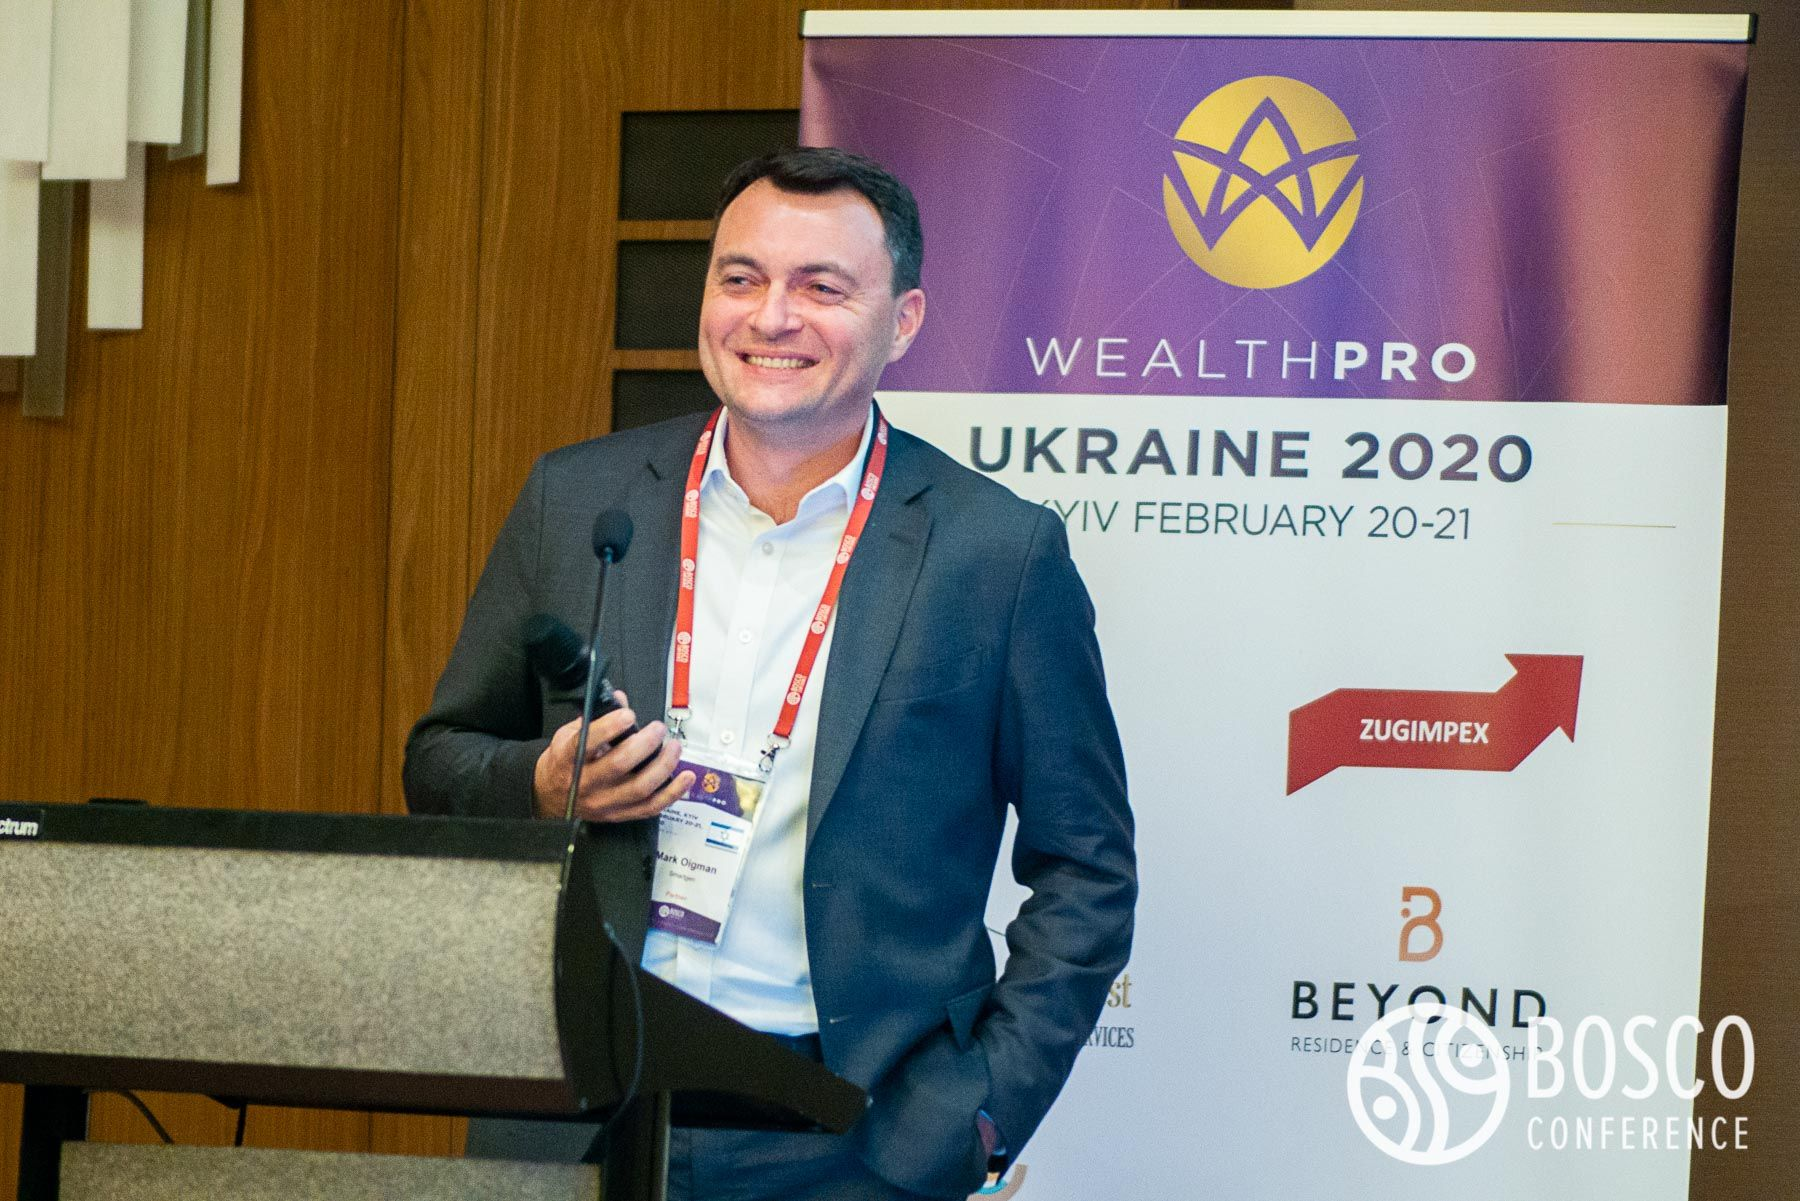 WealthPro Ukraine Kyiv 2020 73